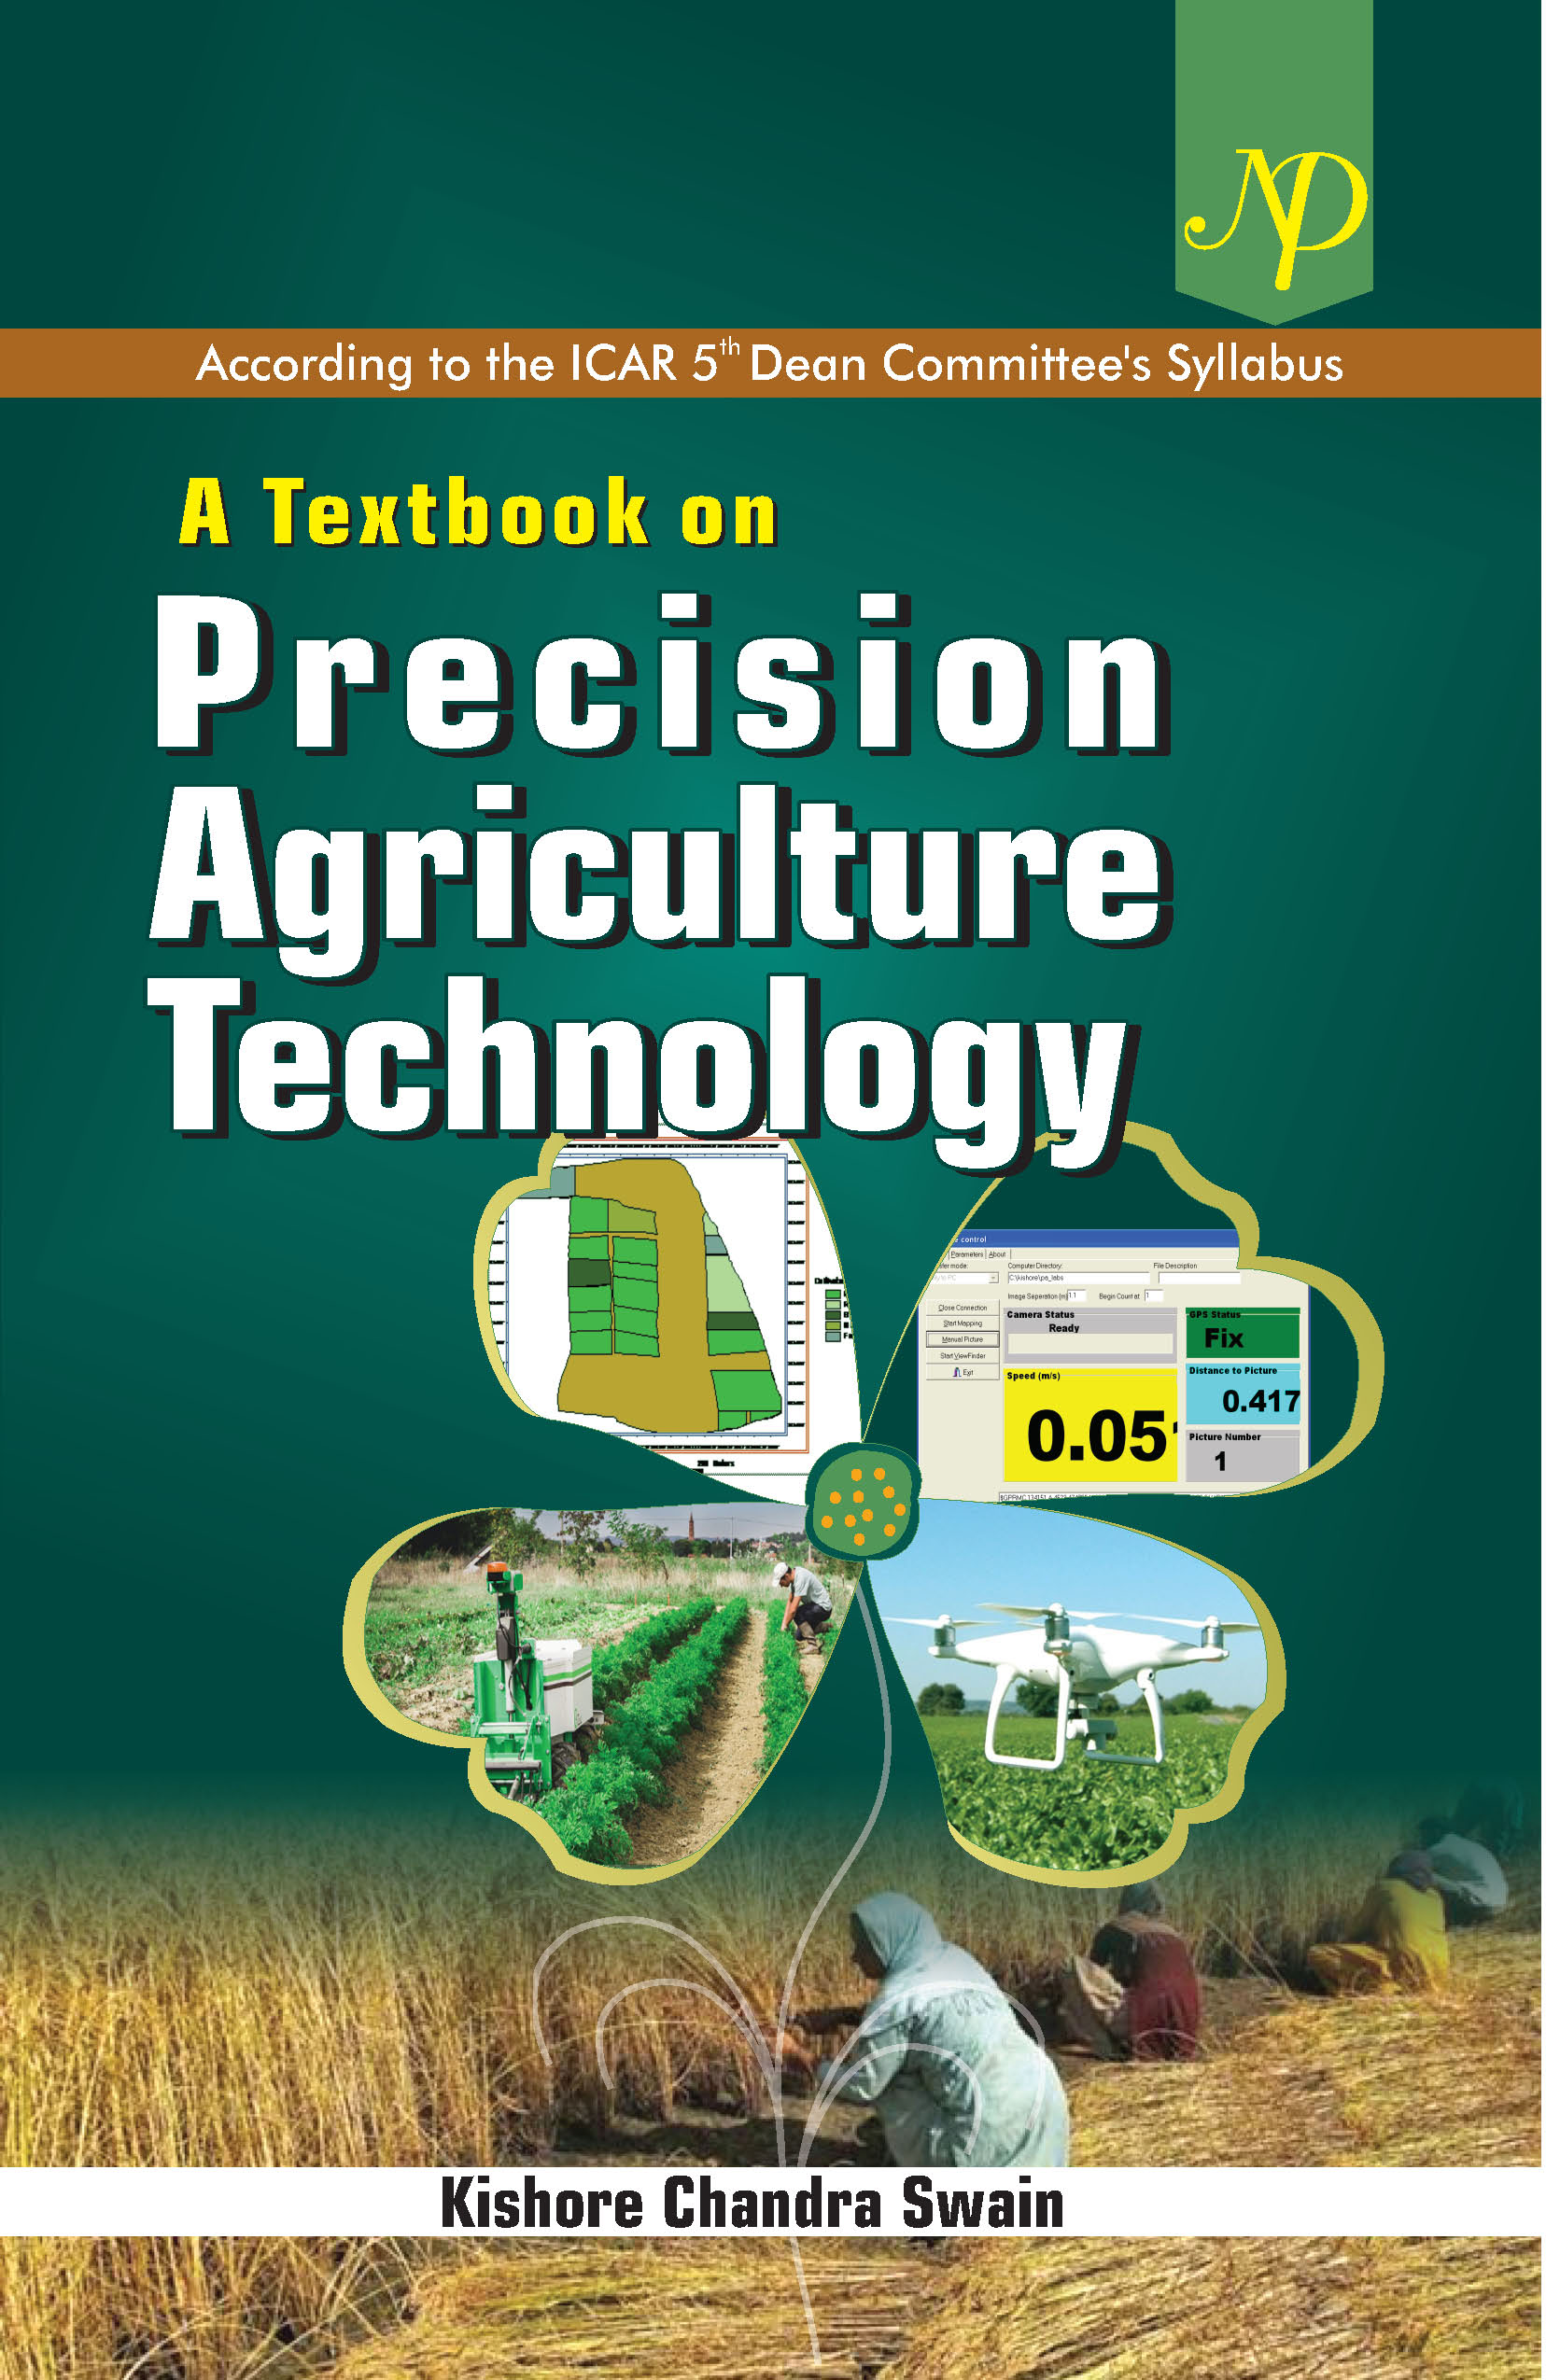 A Textbook on Precision Agriculture Technology